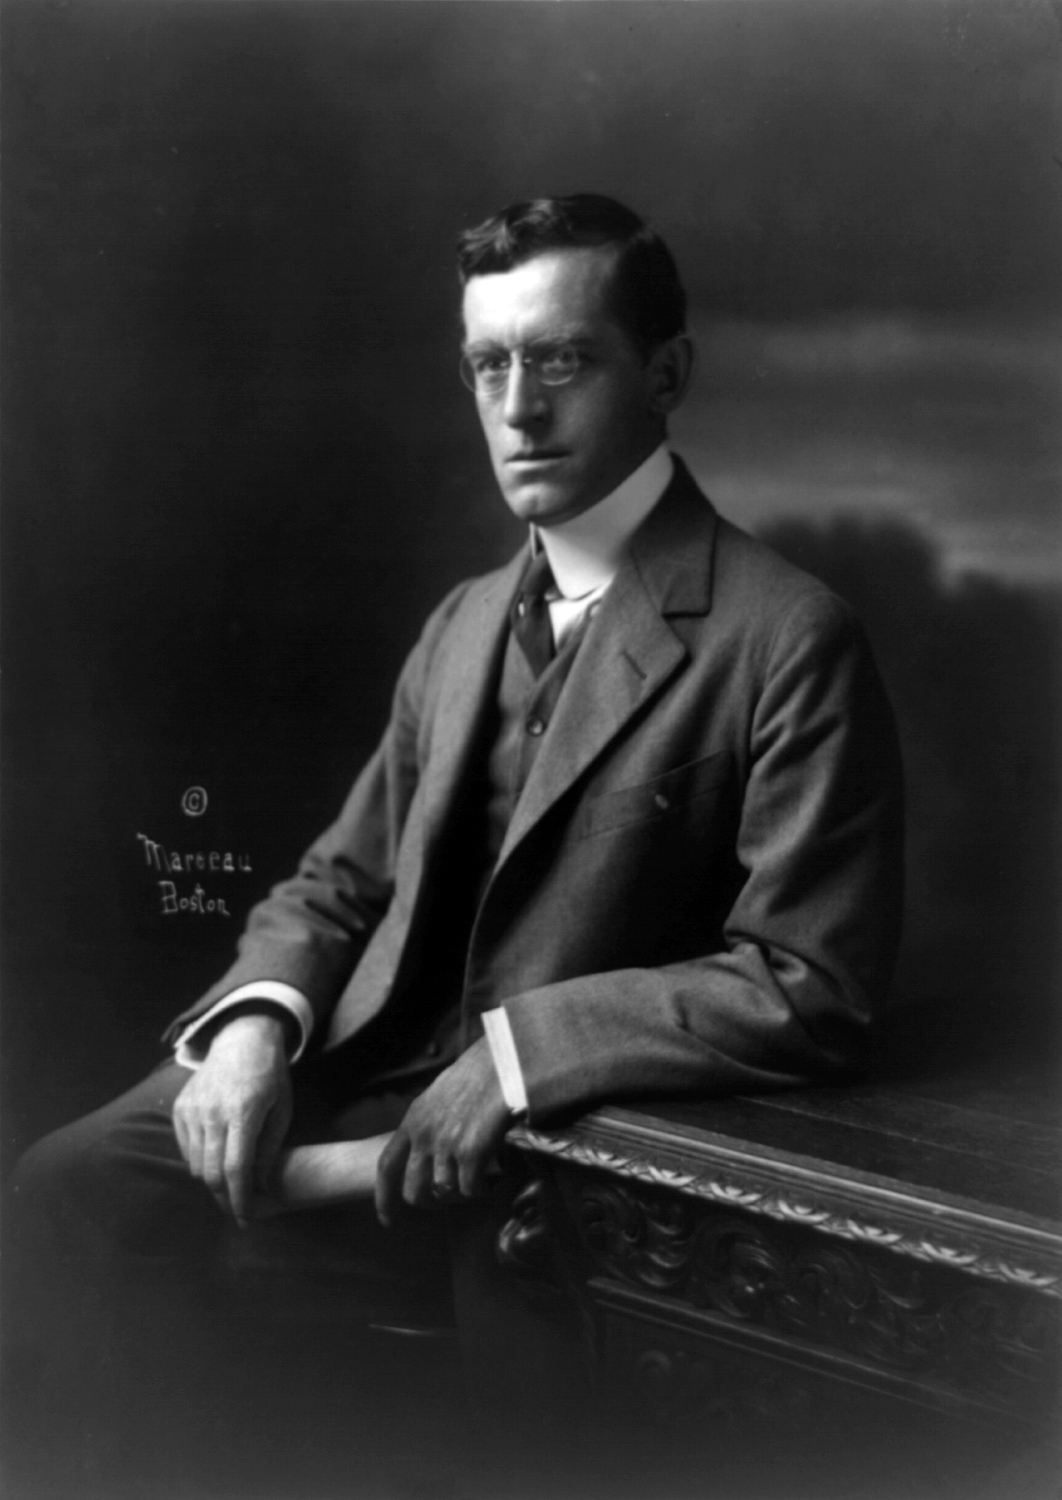 (1911) Ralph Adams Cram, noted American Architect